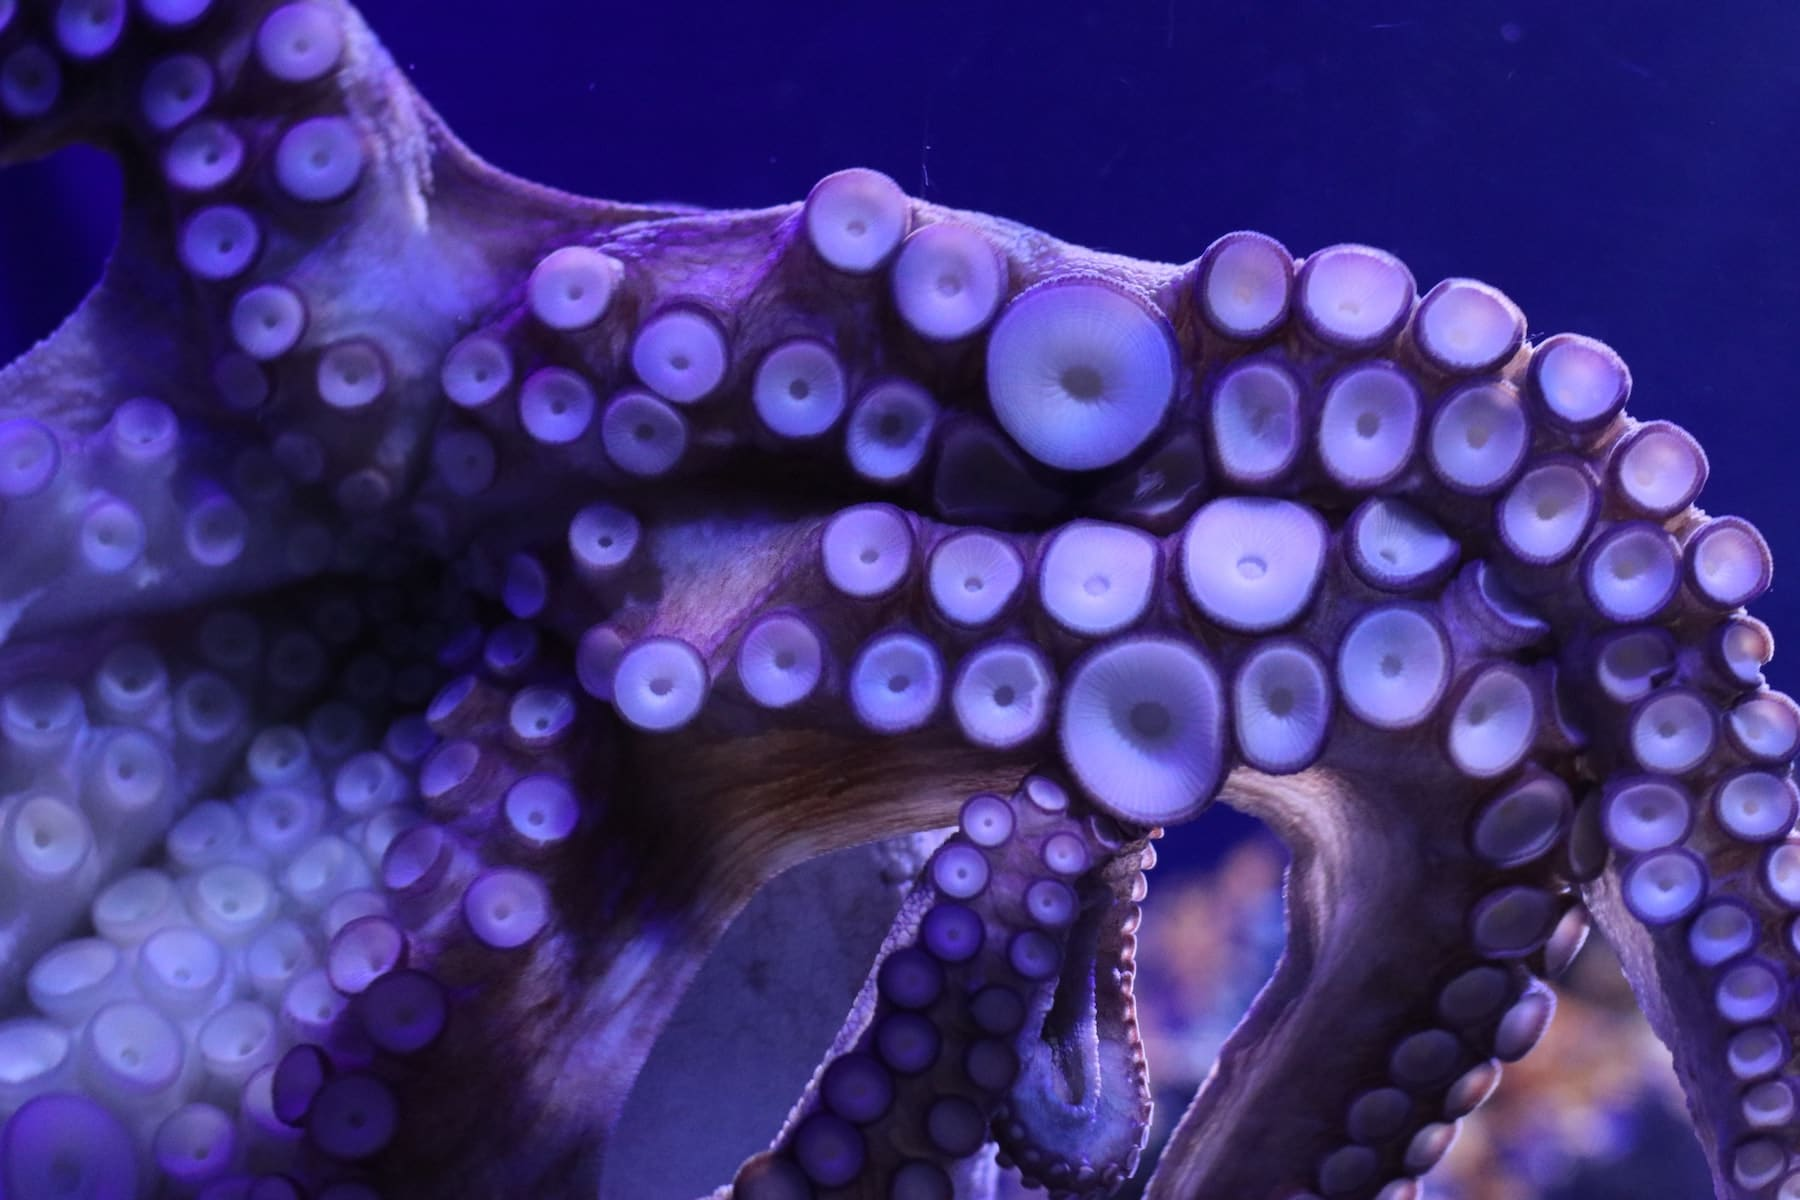 Seven keys to deep learning from The Octopus Teacher